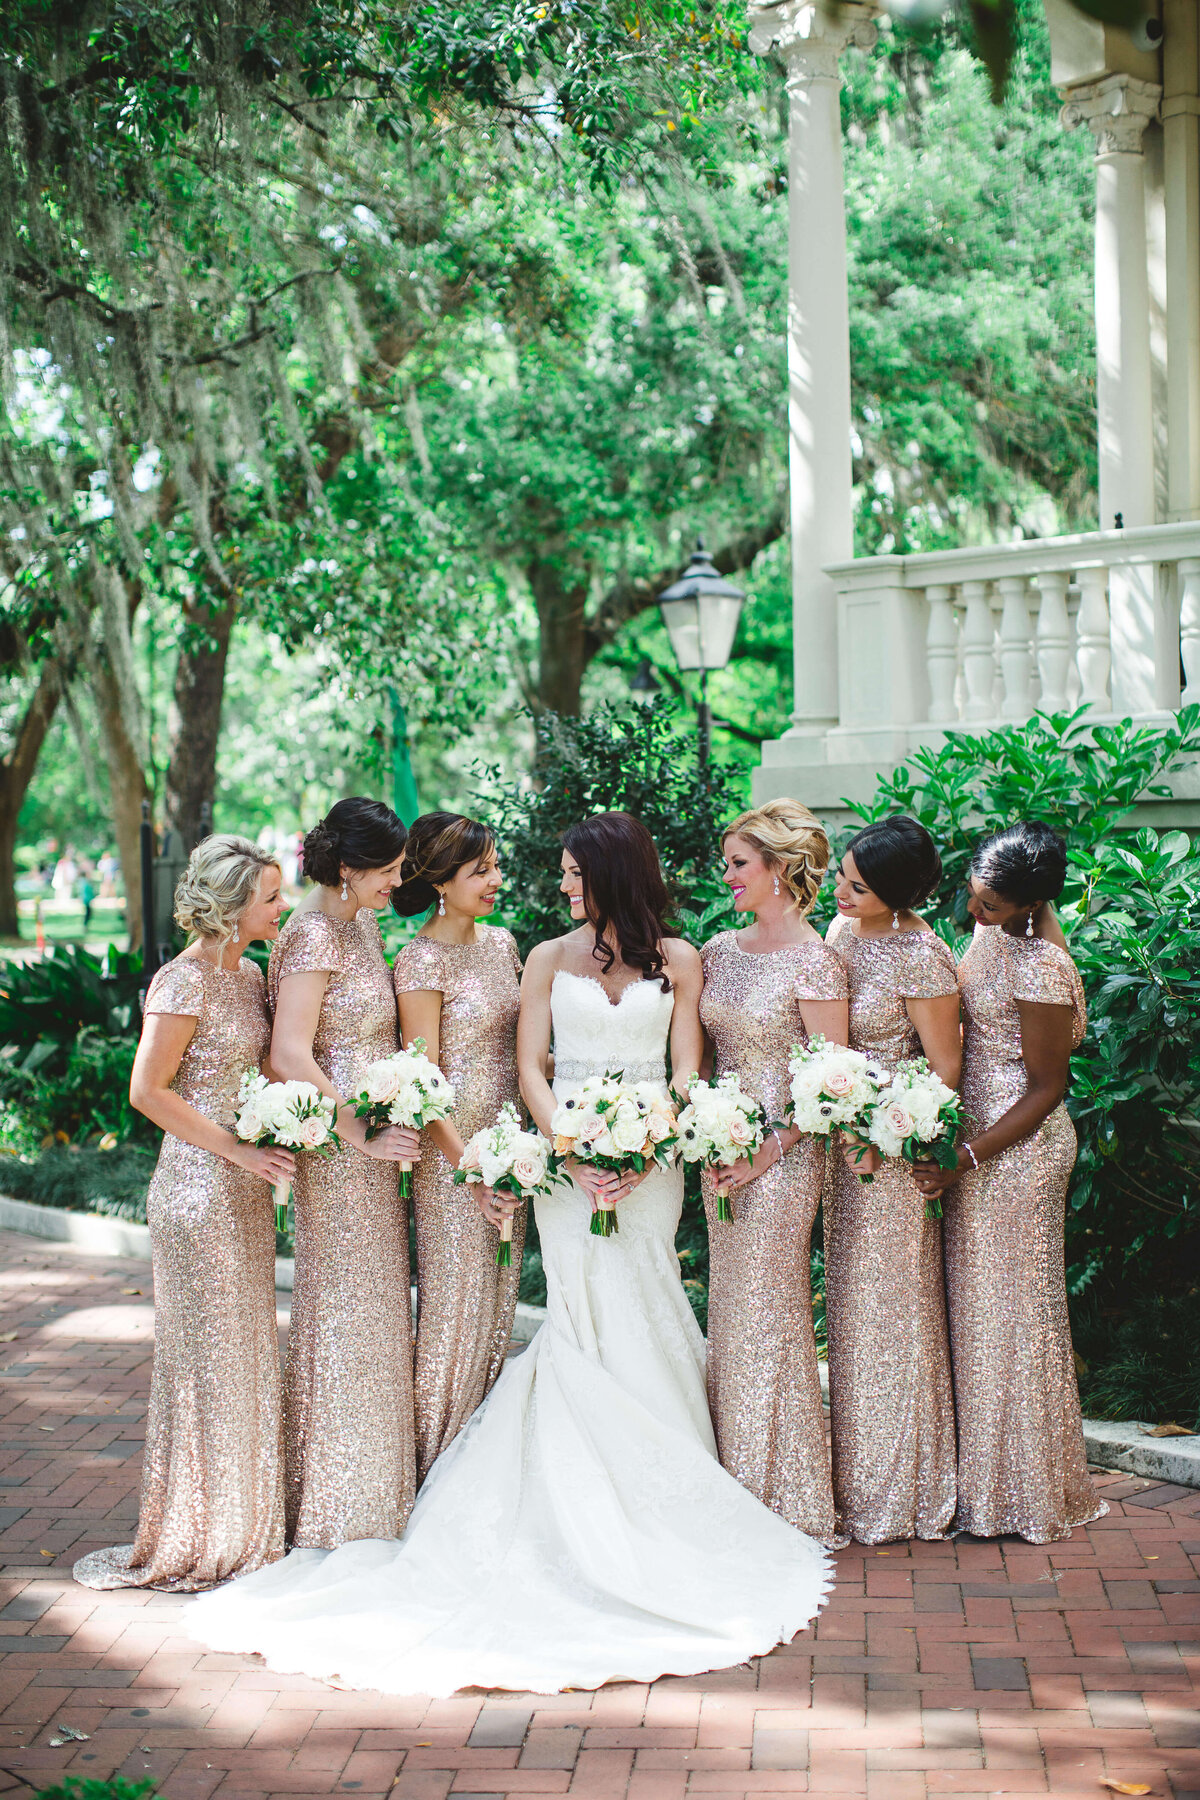 Historic Savannah wedding by Izzy and Co.